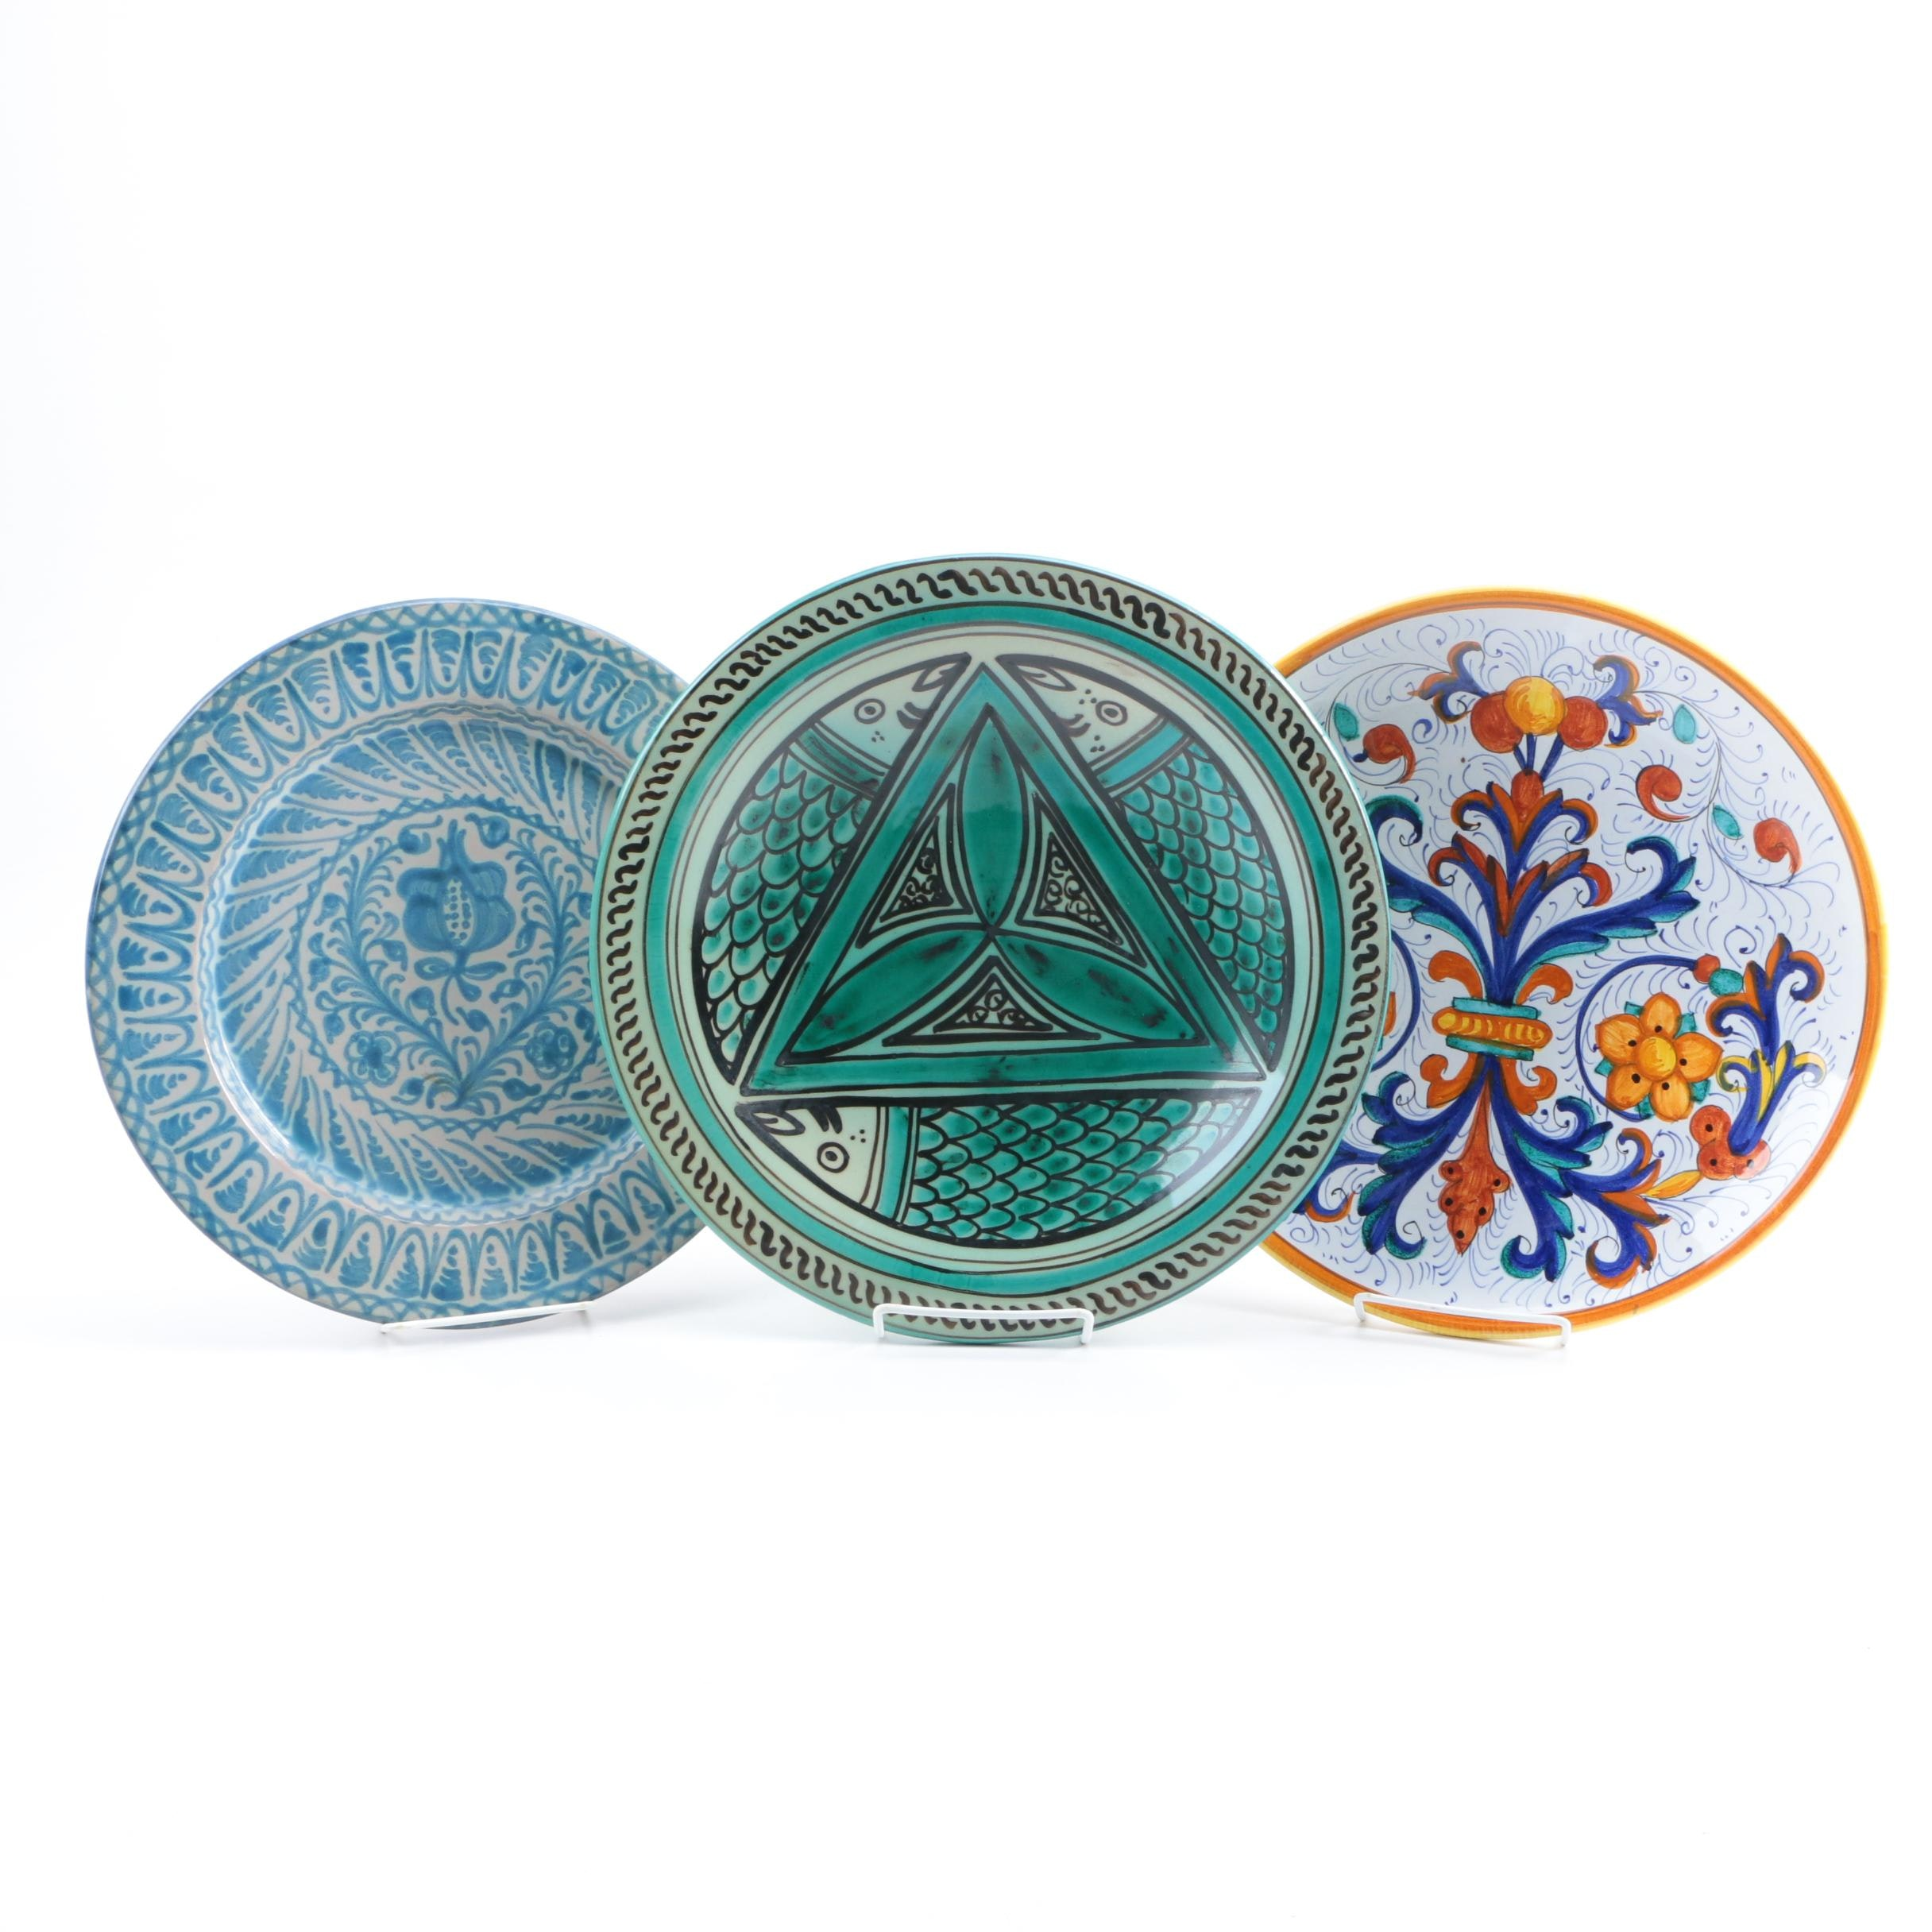 Hand-Painted Decorative Cabinet Plates Including Deruta